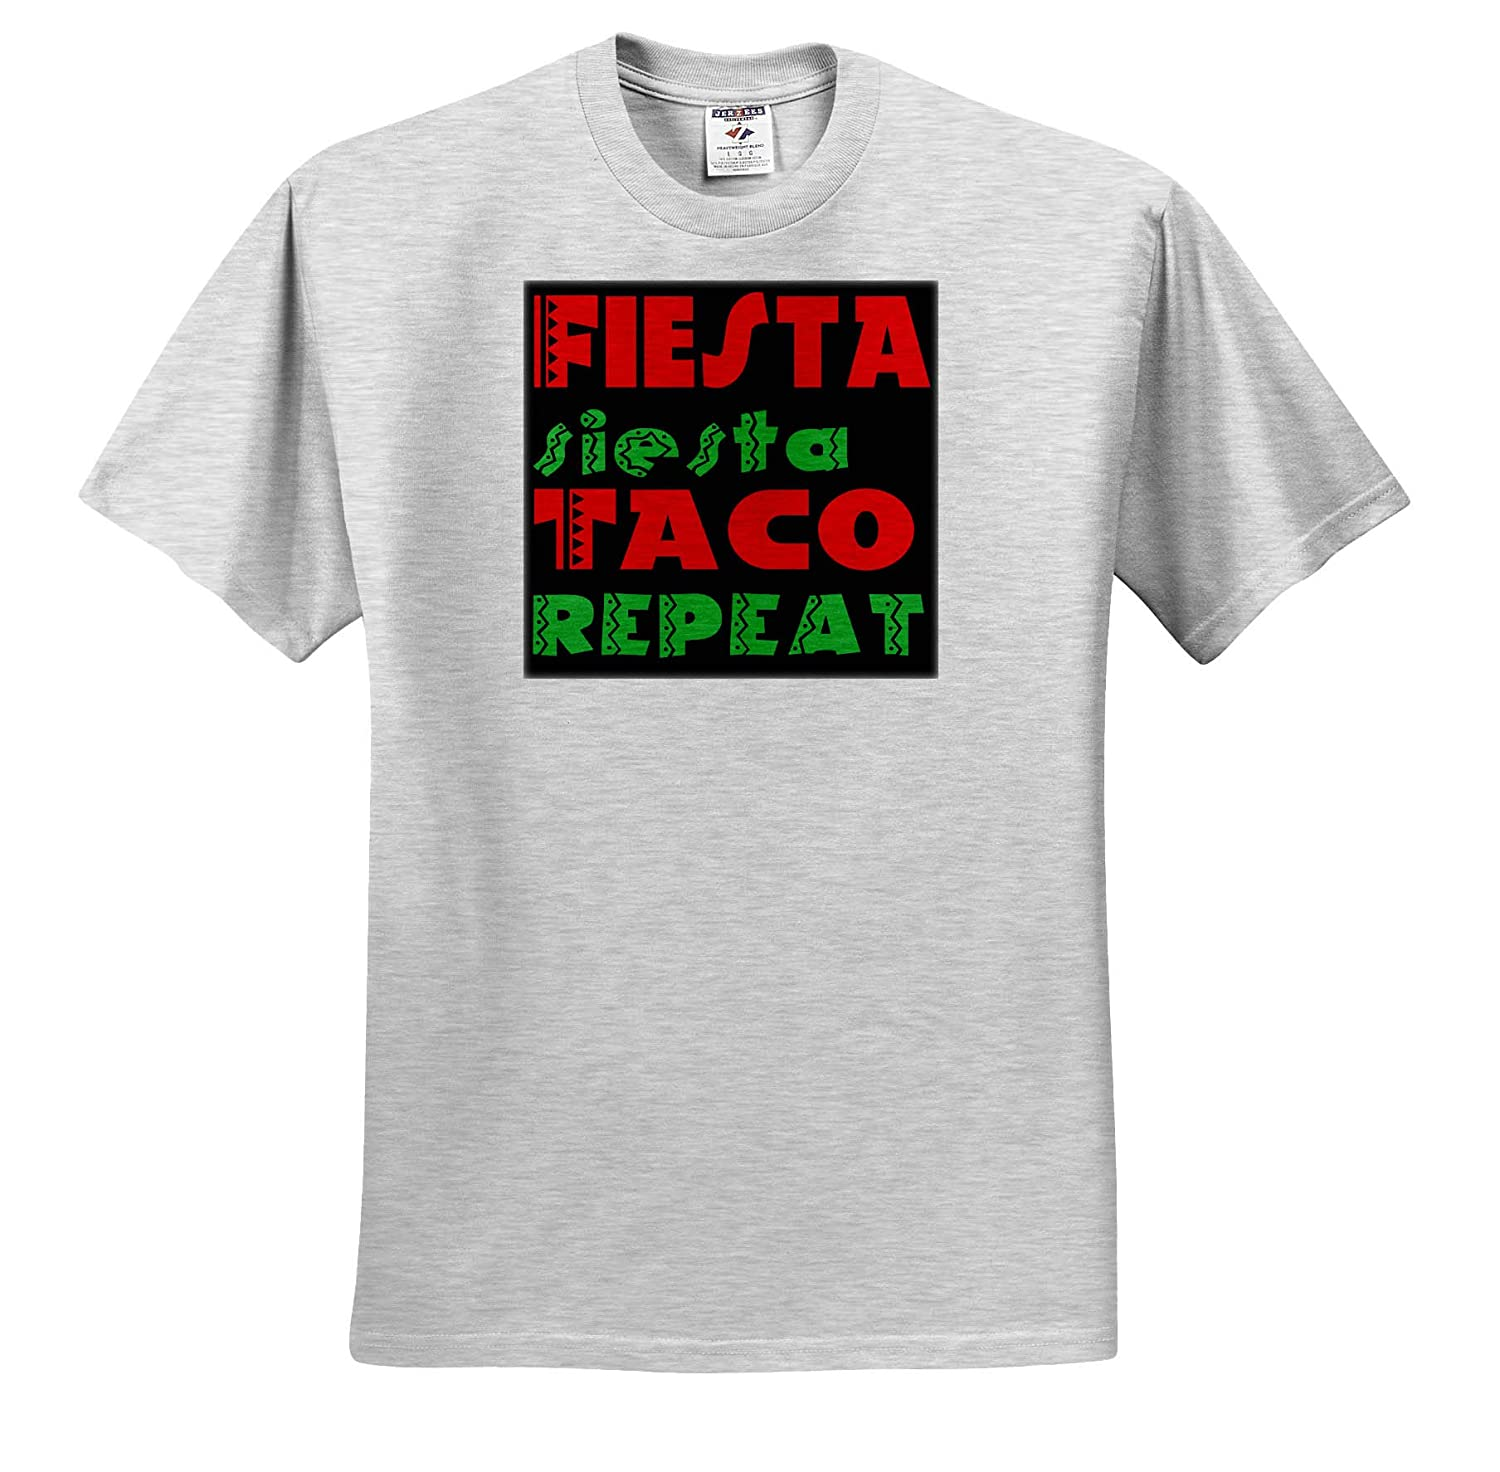 Adult T-Shirt XL Fiesta Siesta Taco Repeat 3dRose Anne Marie Baugh ts/_319285 Quotes and Sayings